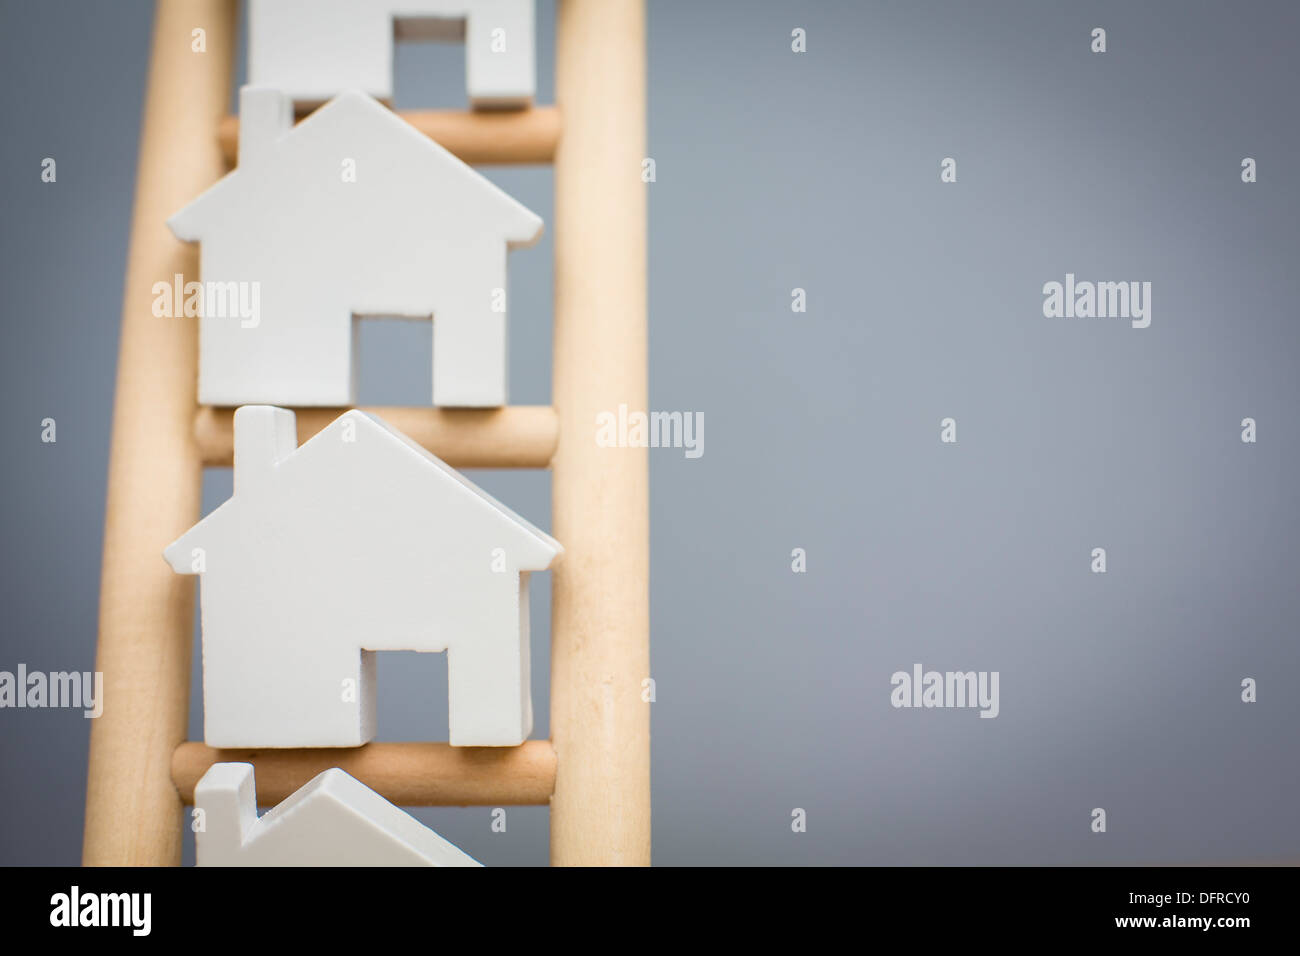 Concept Shot To Illustrate Property Ladder - Stock Image